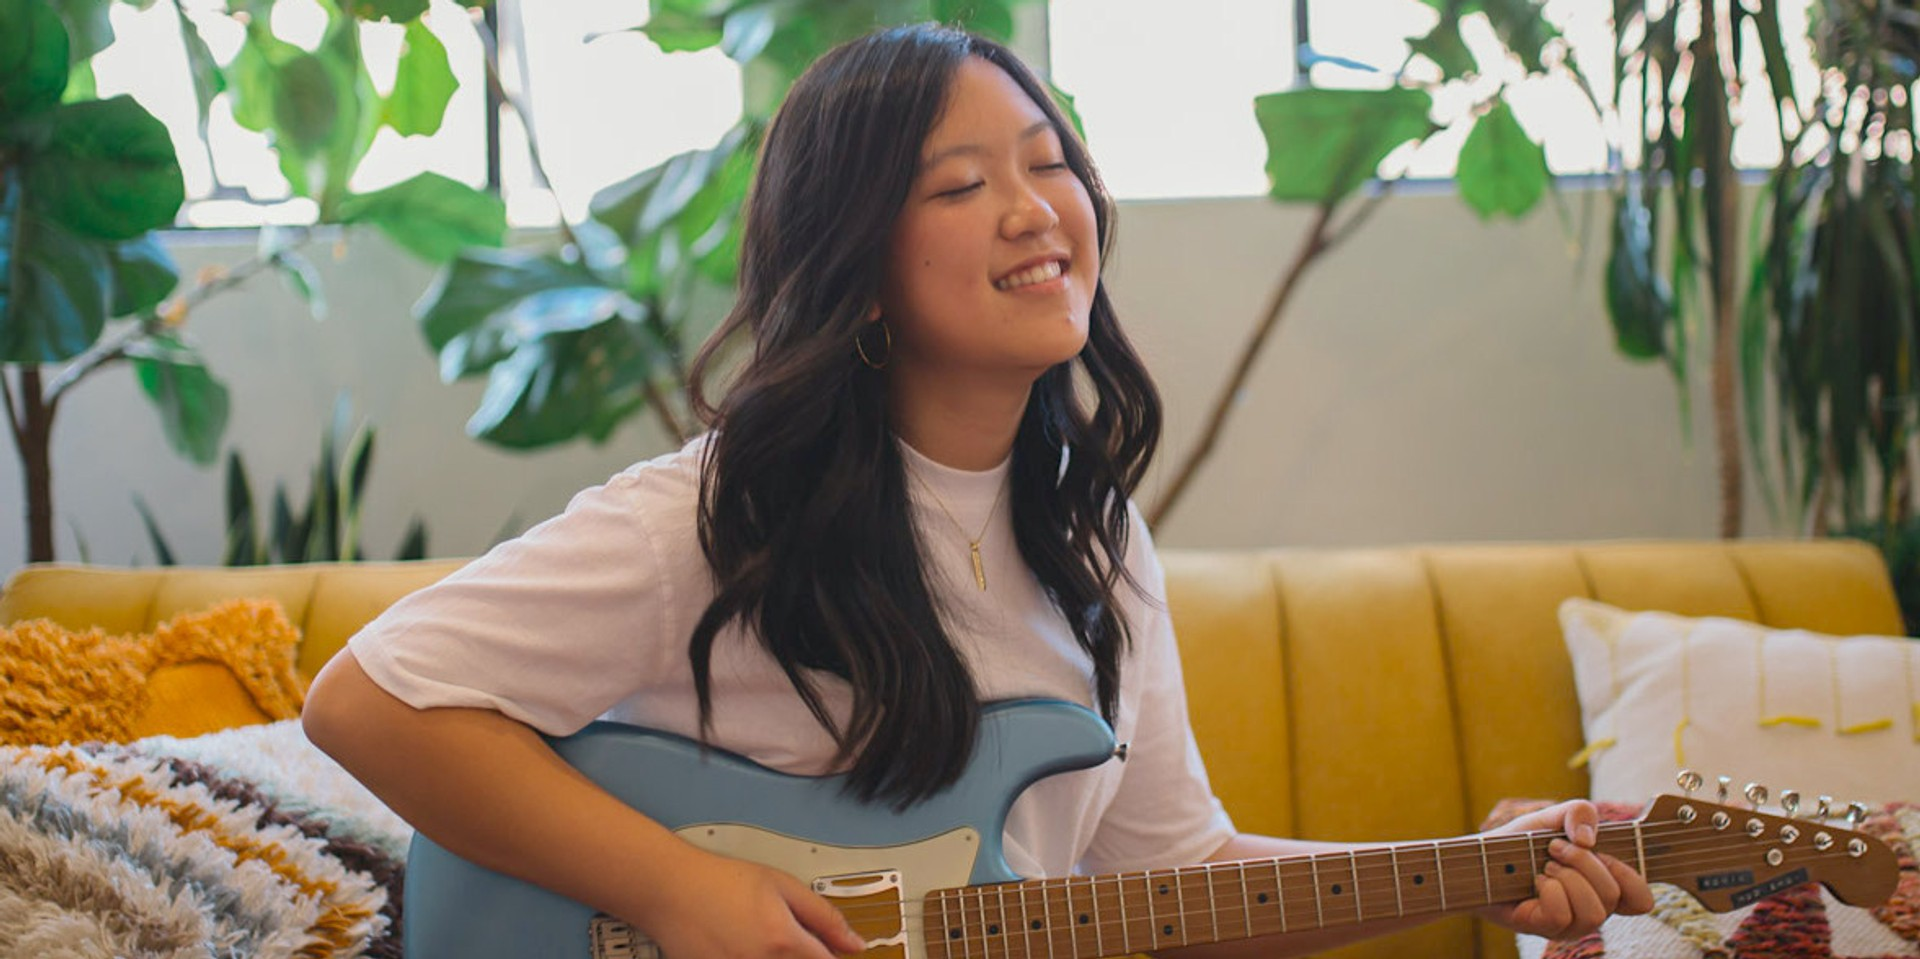 Meet Tiana Ohara, the 22-year-old guitarist who's ready to conquer the world